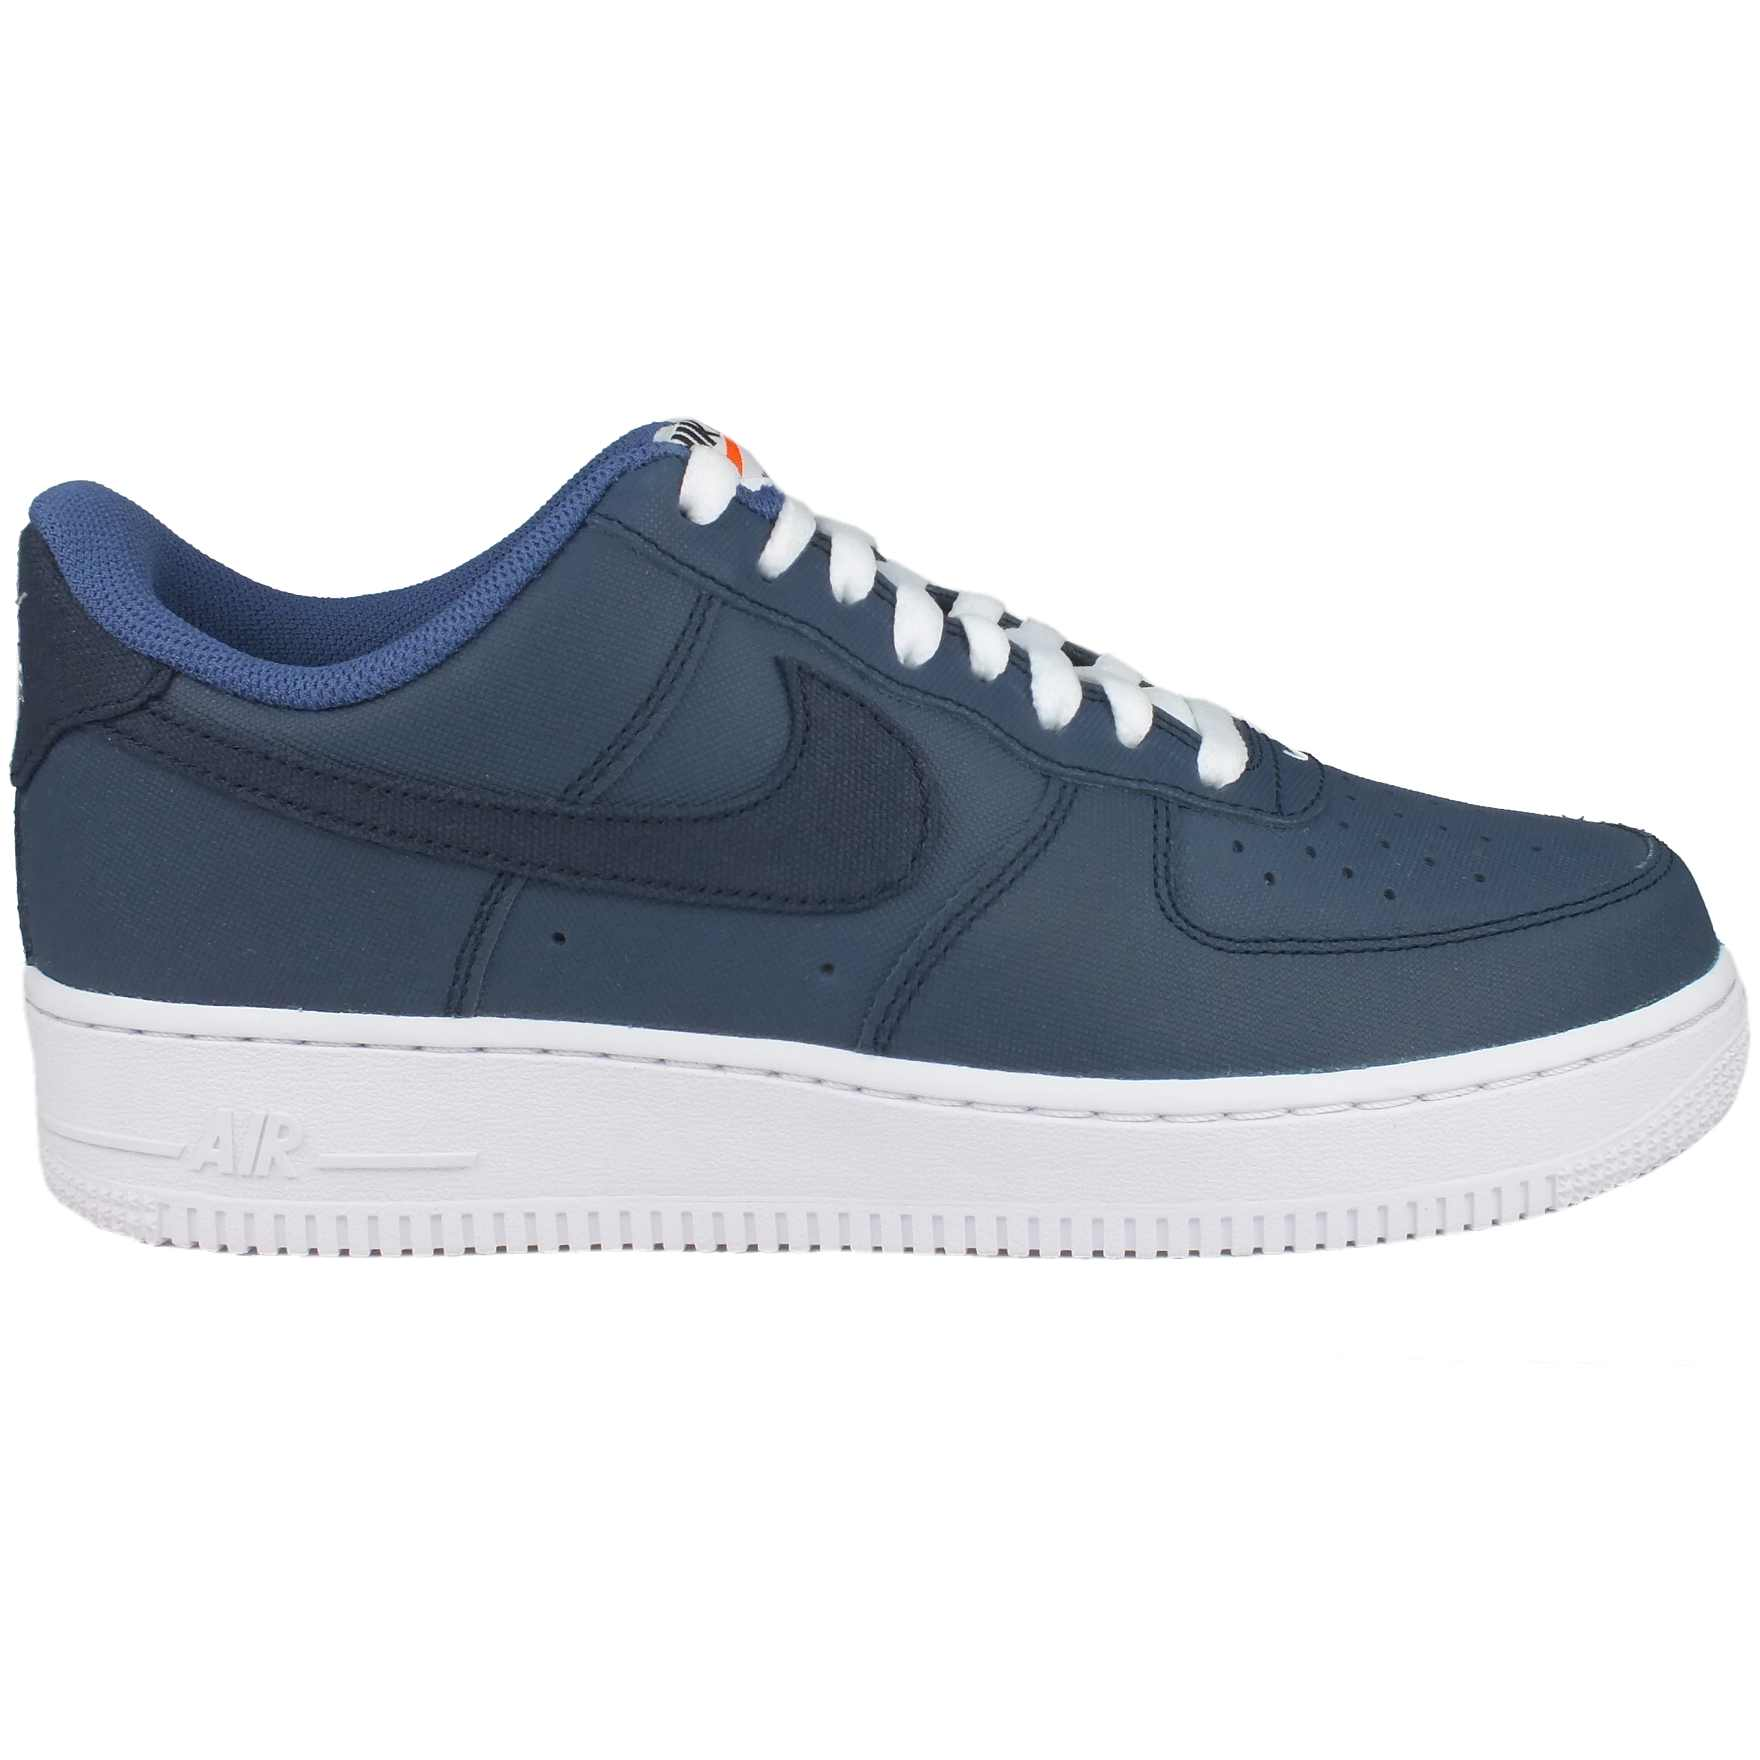 nike air force 1 sneaker schuhe herren ebay. Black Bedroom Furniture Sets. Home Design Ideas